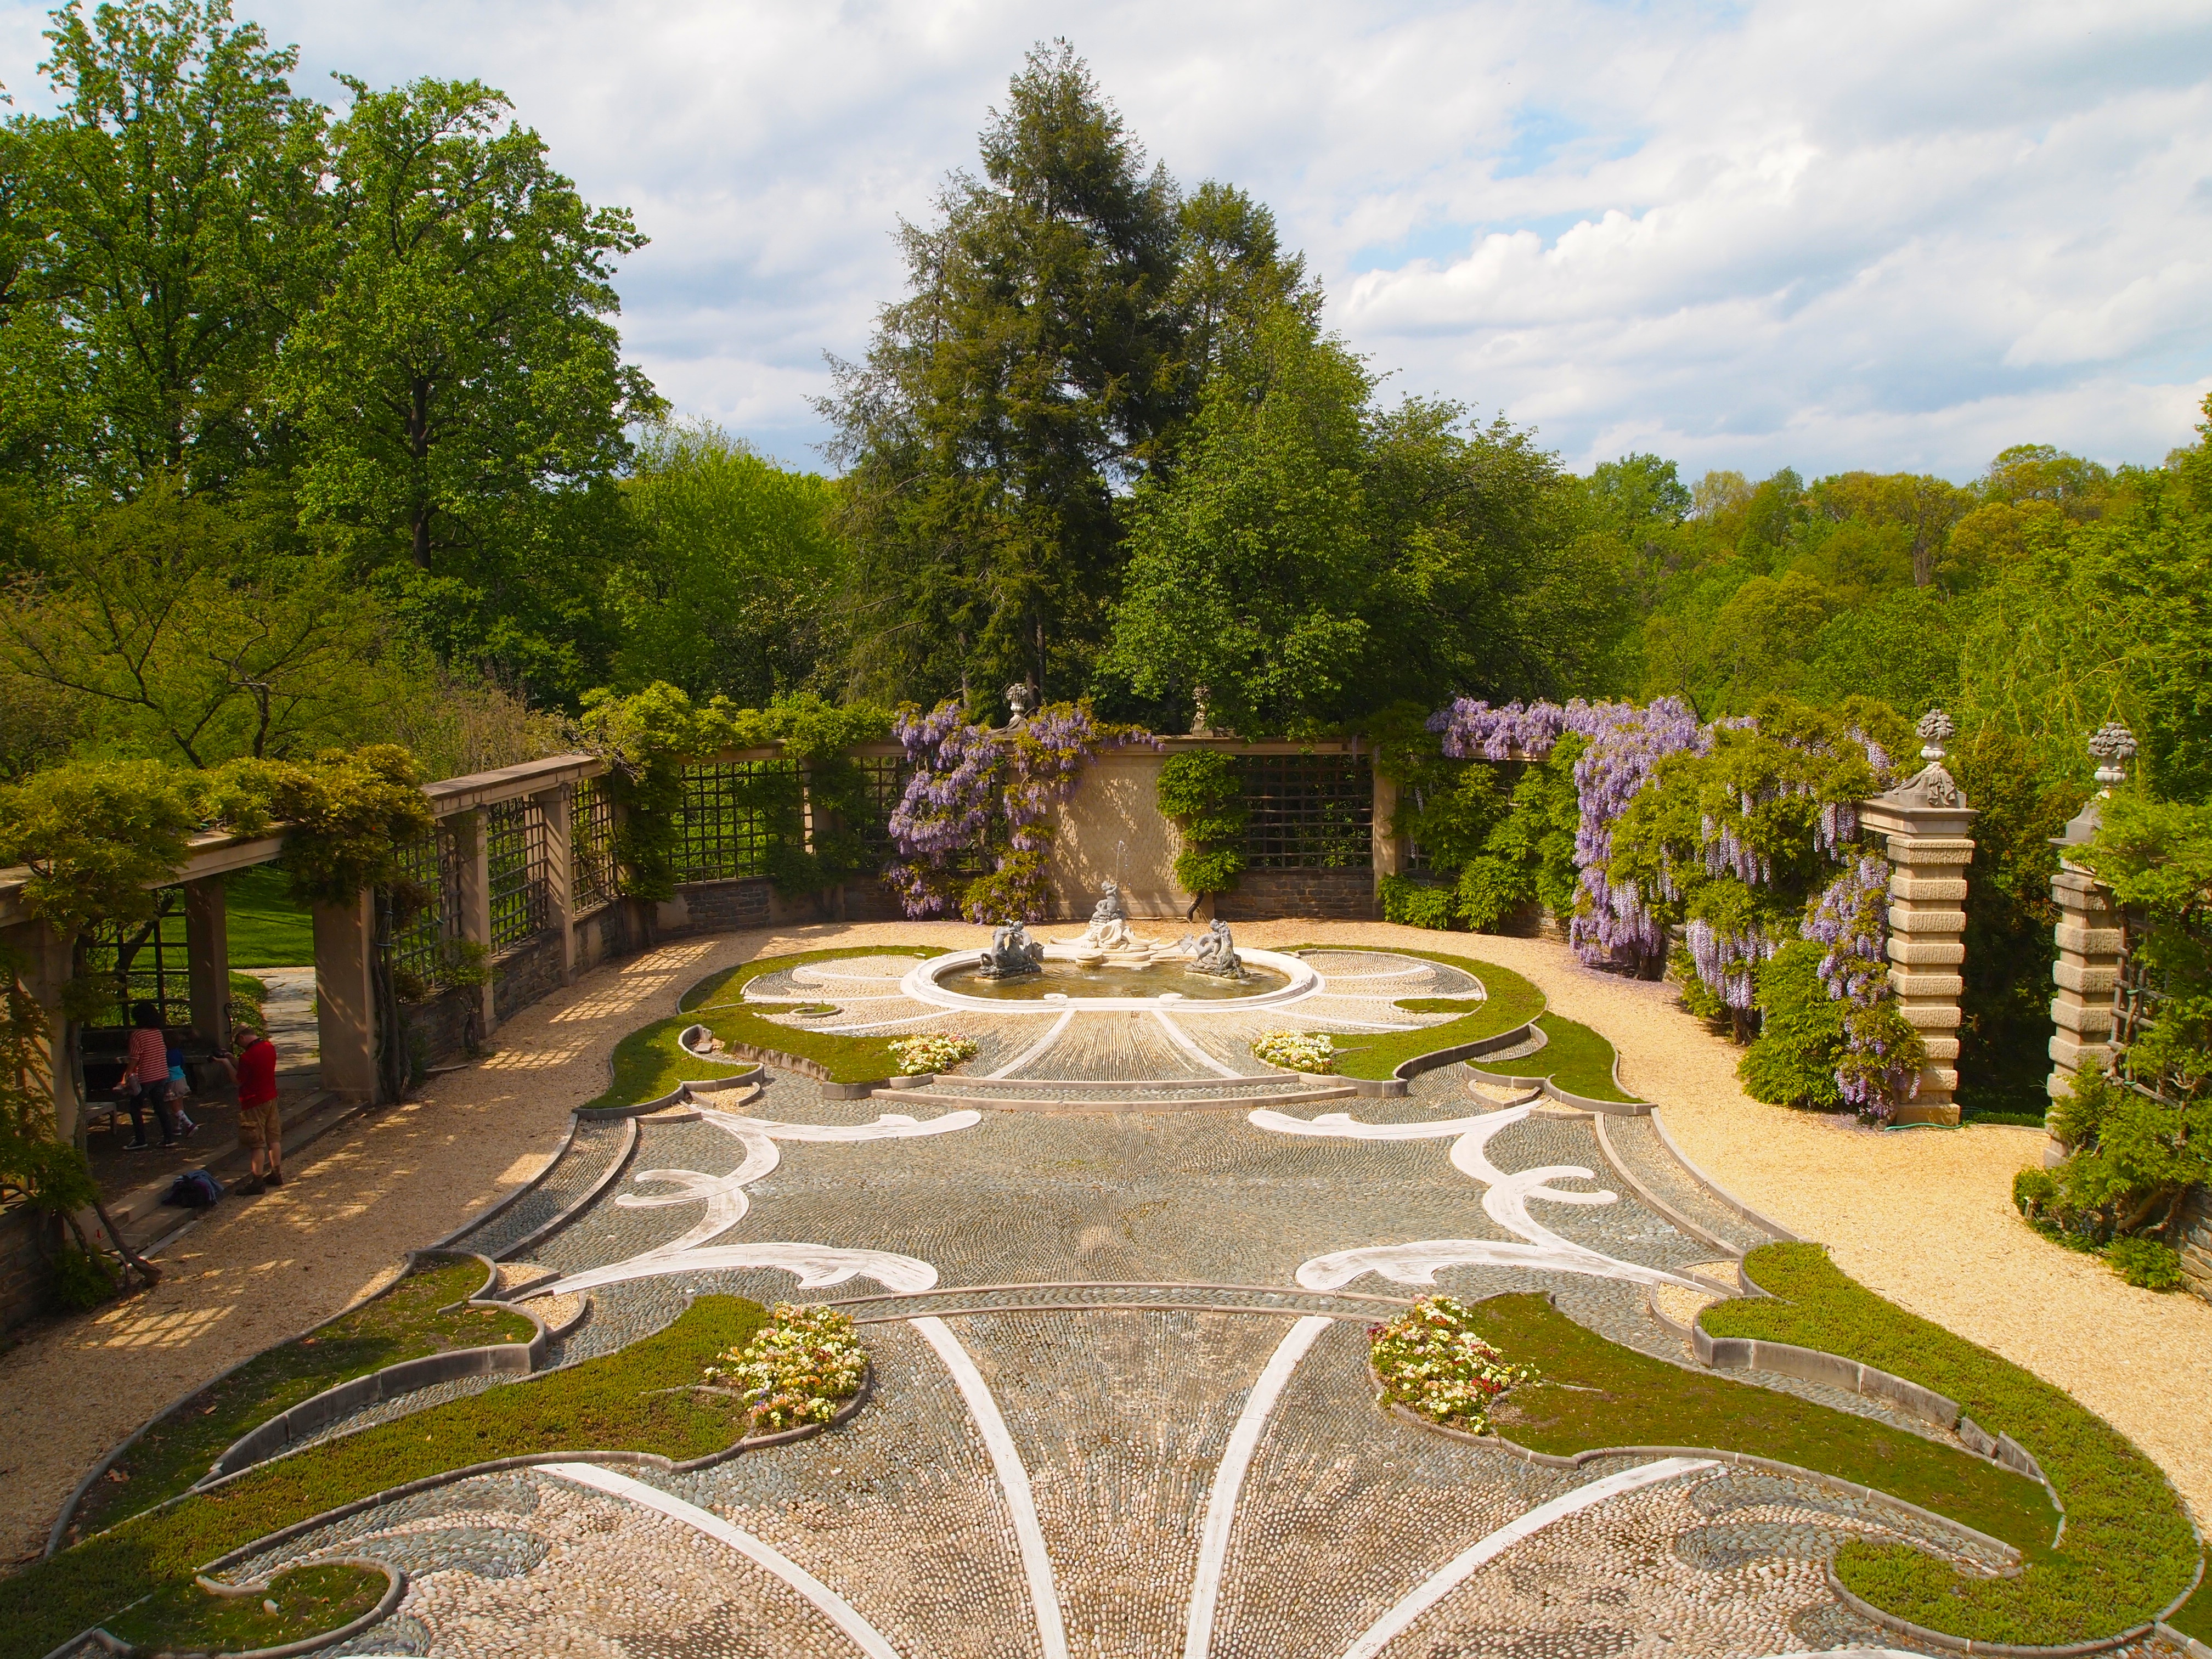 of wisteria & tulips at dumbarton oaks gardens – nomad, interrupted